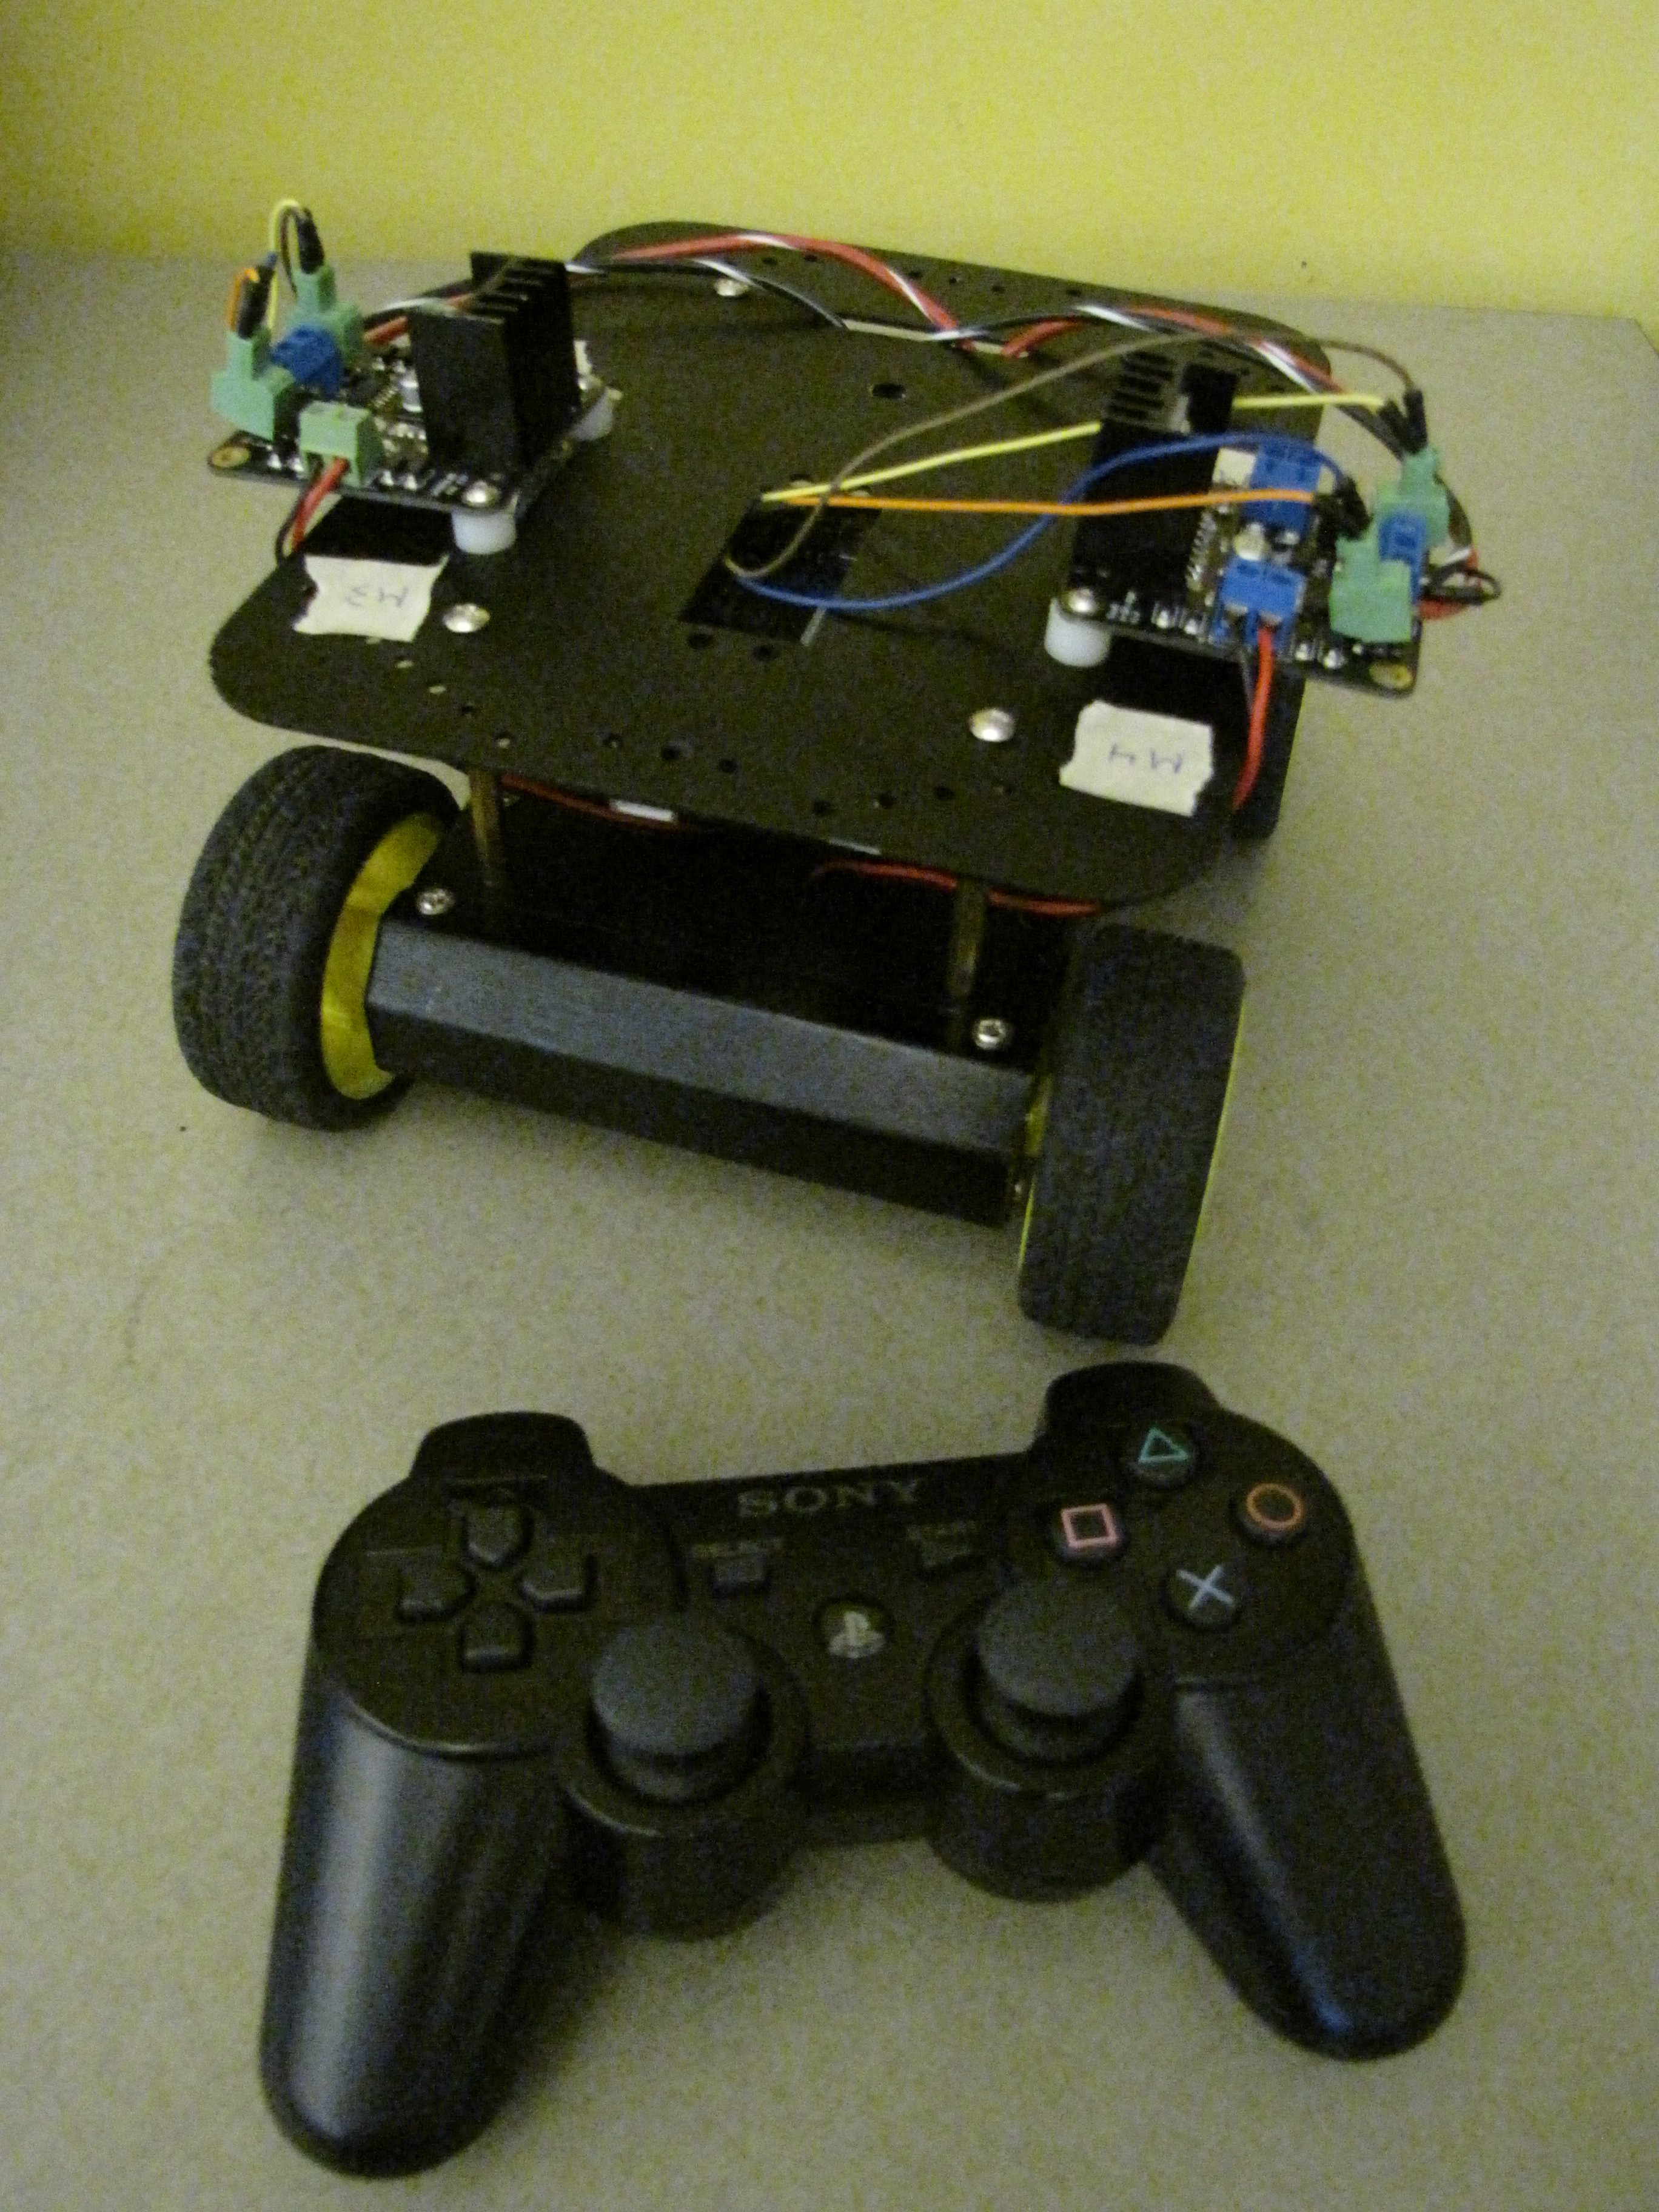 Robot driven by PS3 controller through Arduino and Wifi shield